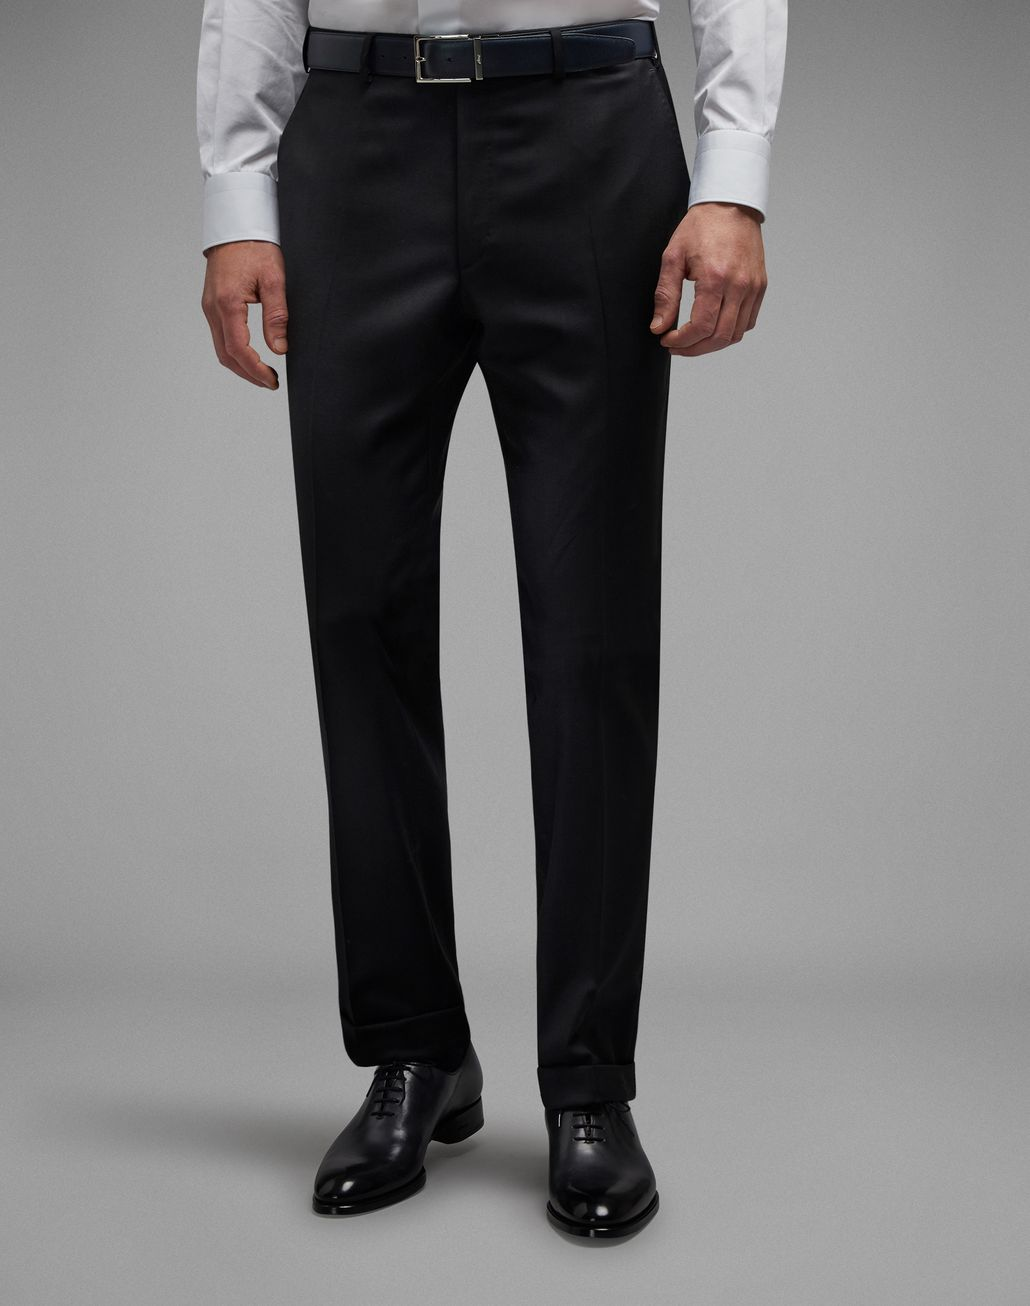 BRIONI 'Essential' Black Tigullio Trousers Trousers [*** pickupInStoreShippingNotGuaranteed_info ***] r